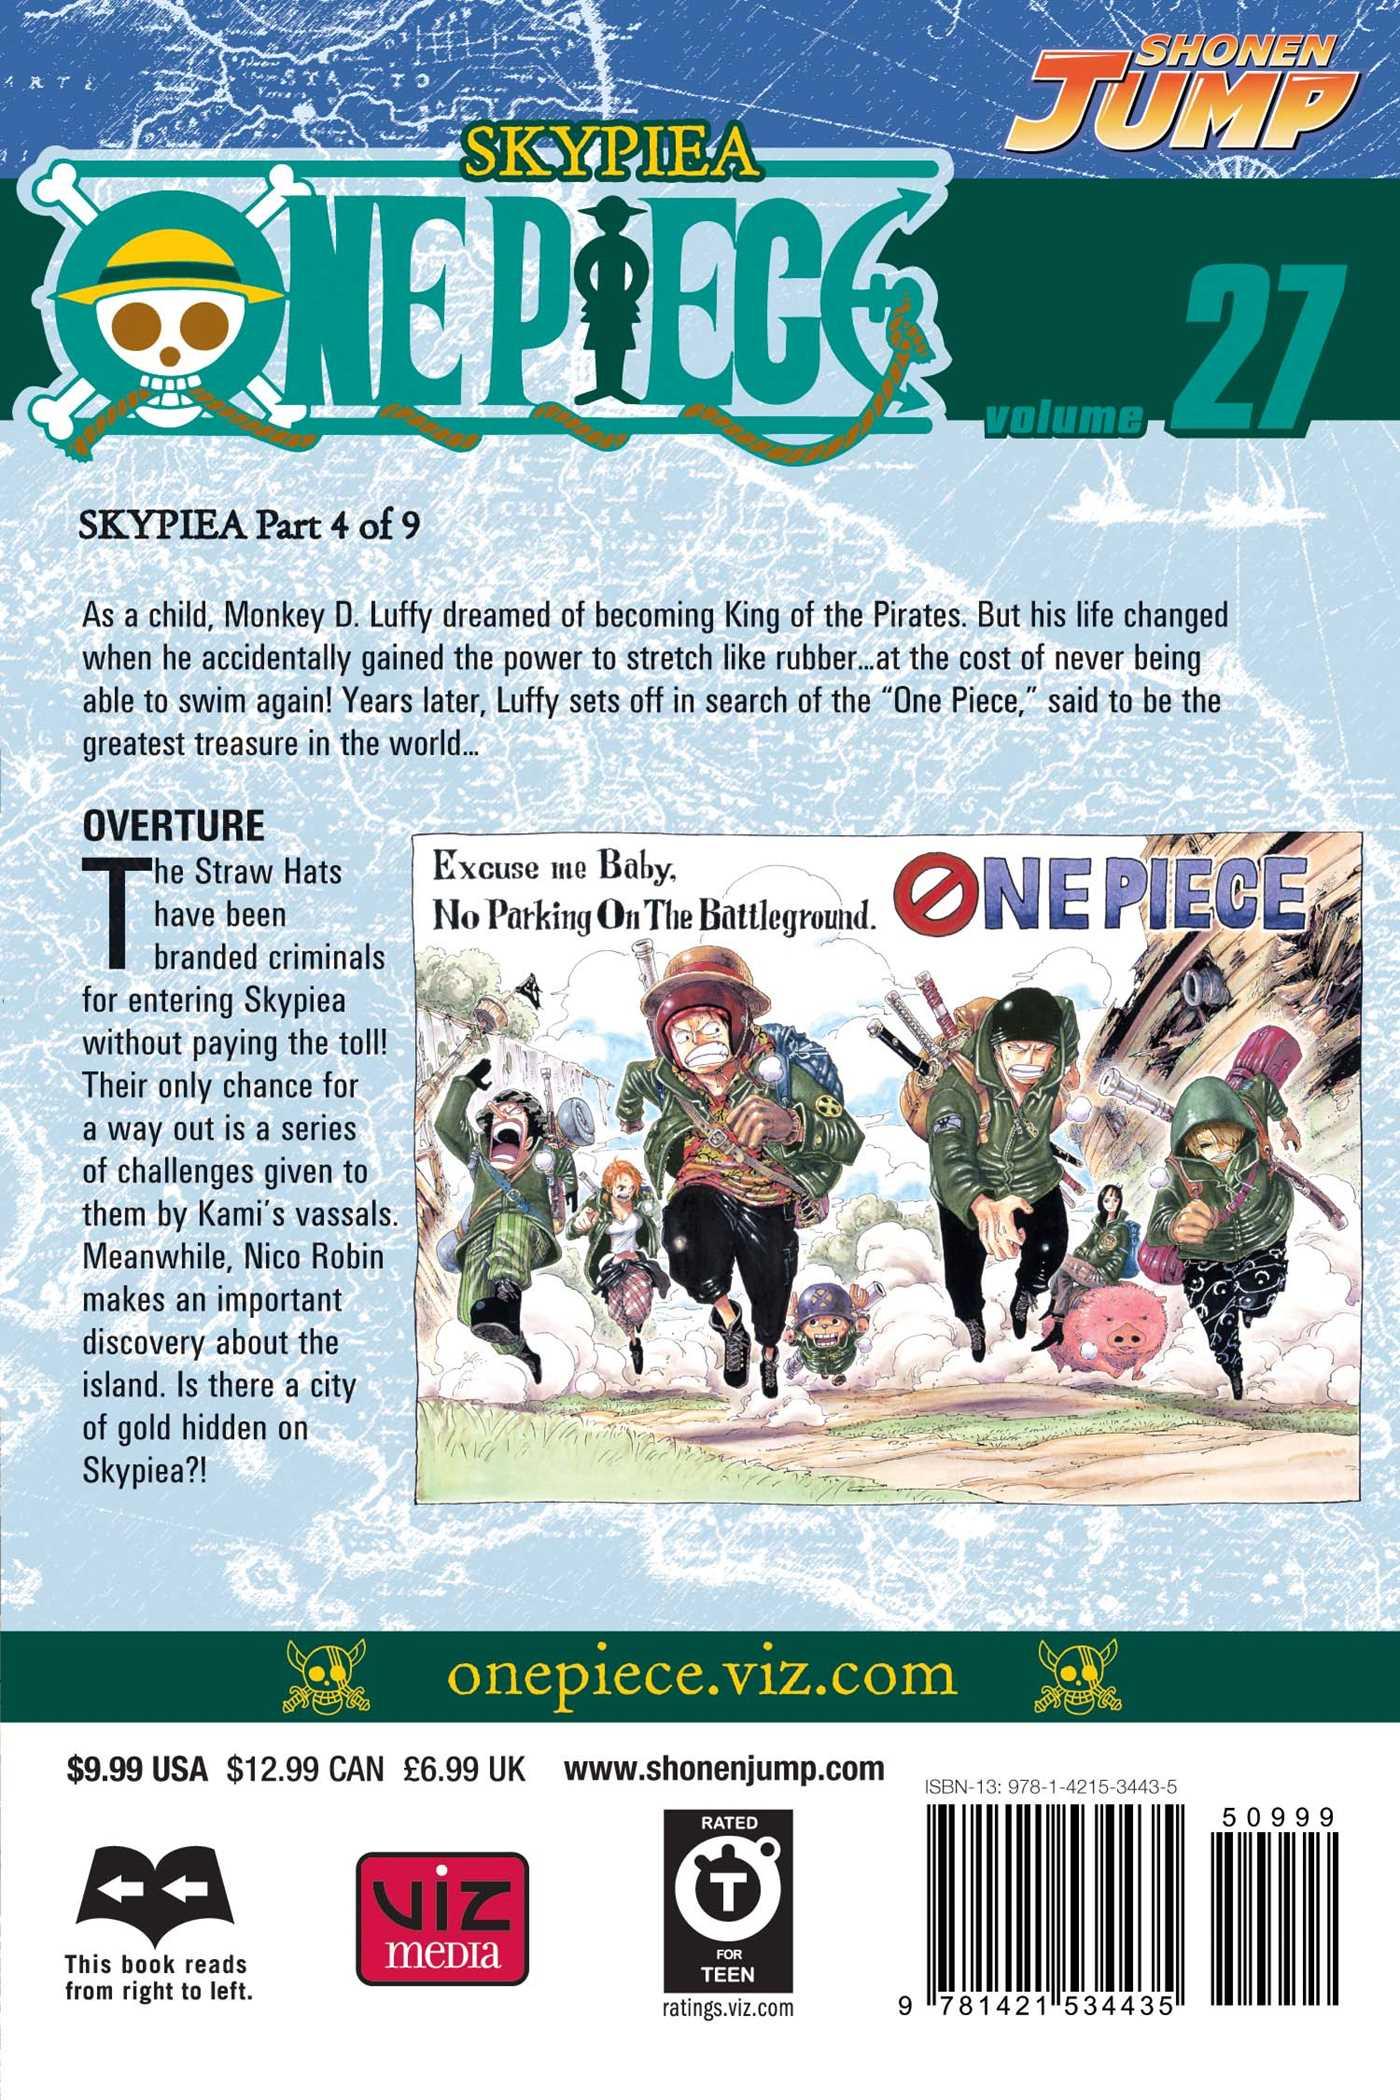 One-piece-vol-27-9781421534435_hr-back